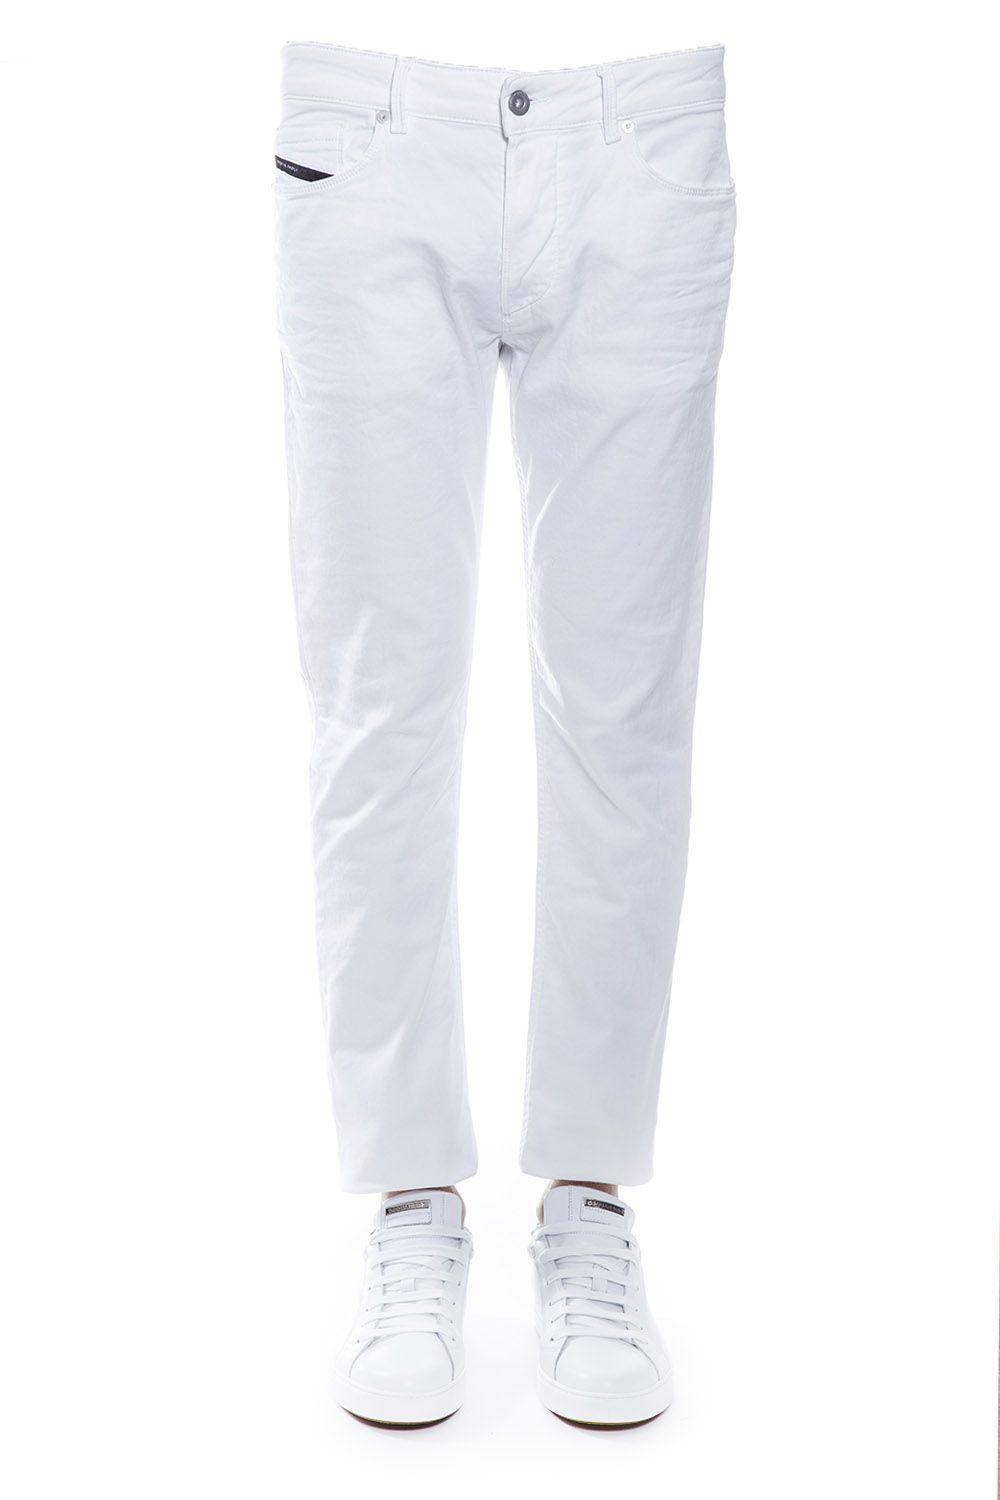 Diesel Black Gold Cotton Denim Jeans In White